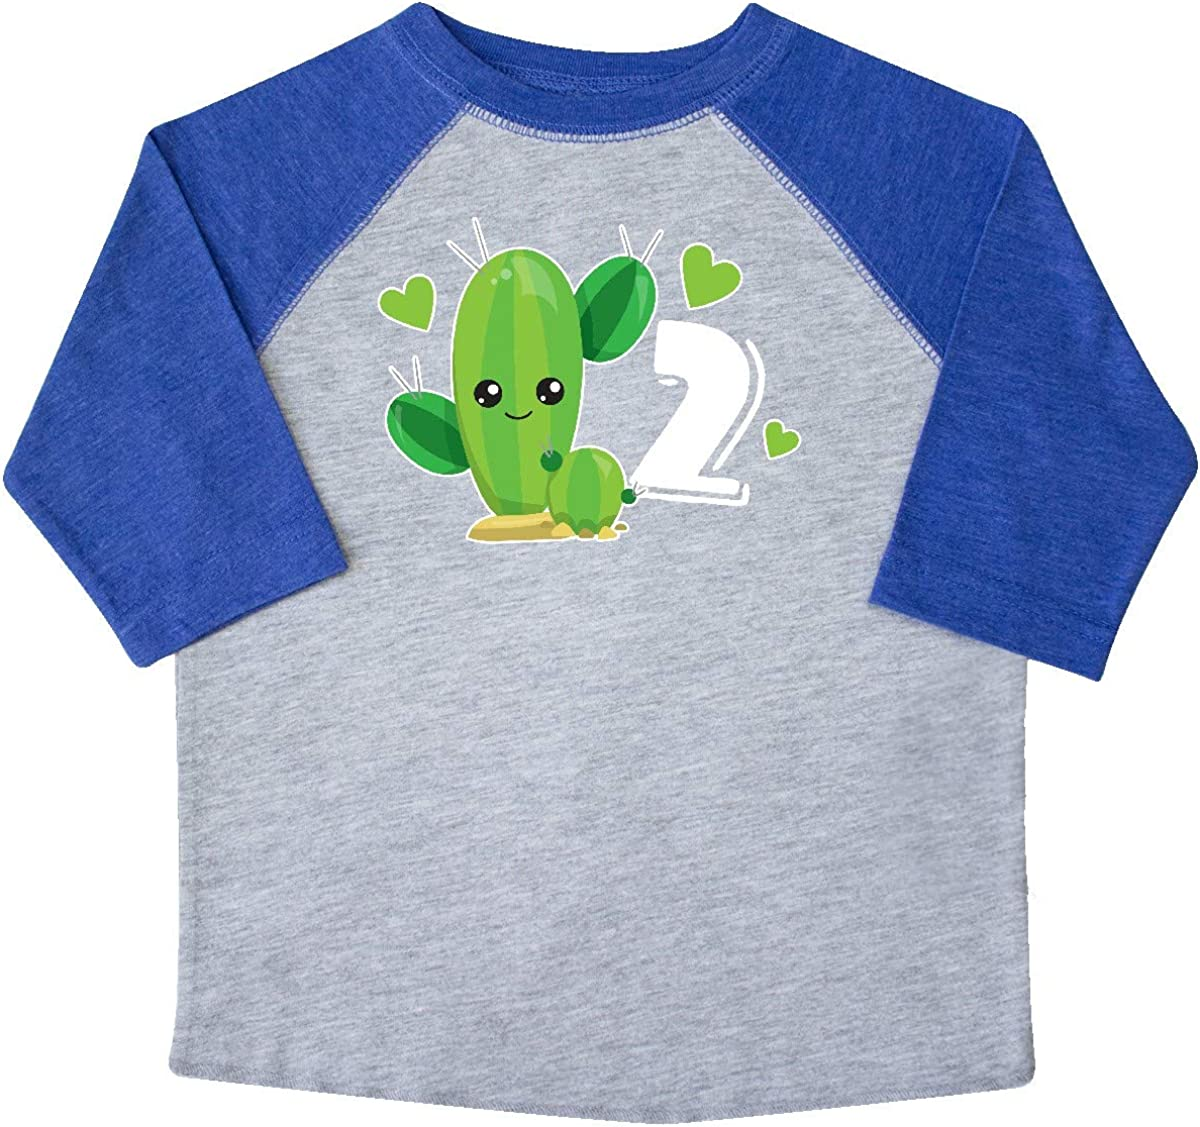 inktastic Im 2 with Cute Cactus and Hearts Toddler T-Shirt